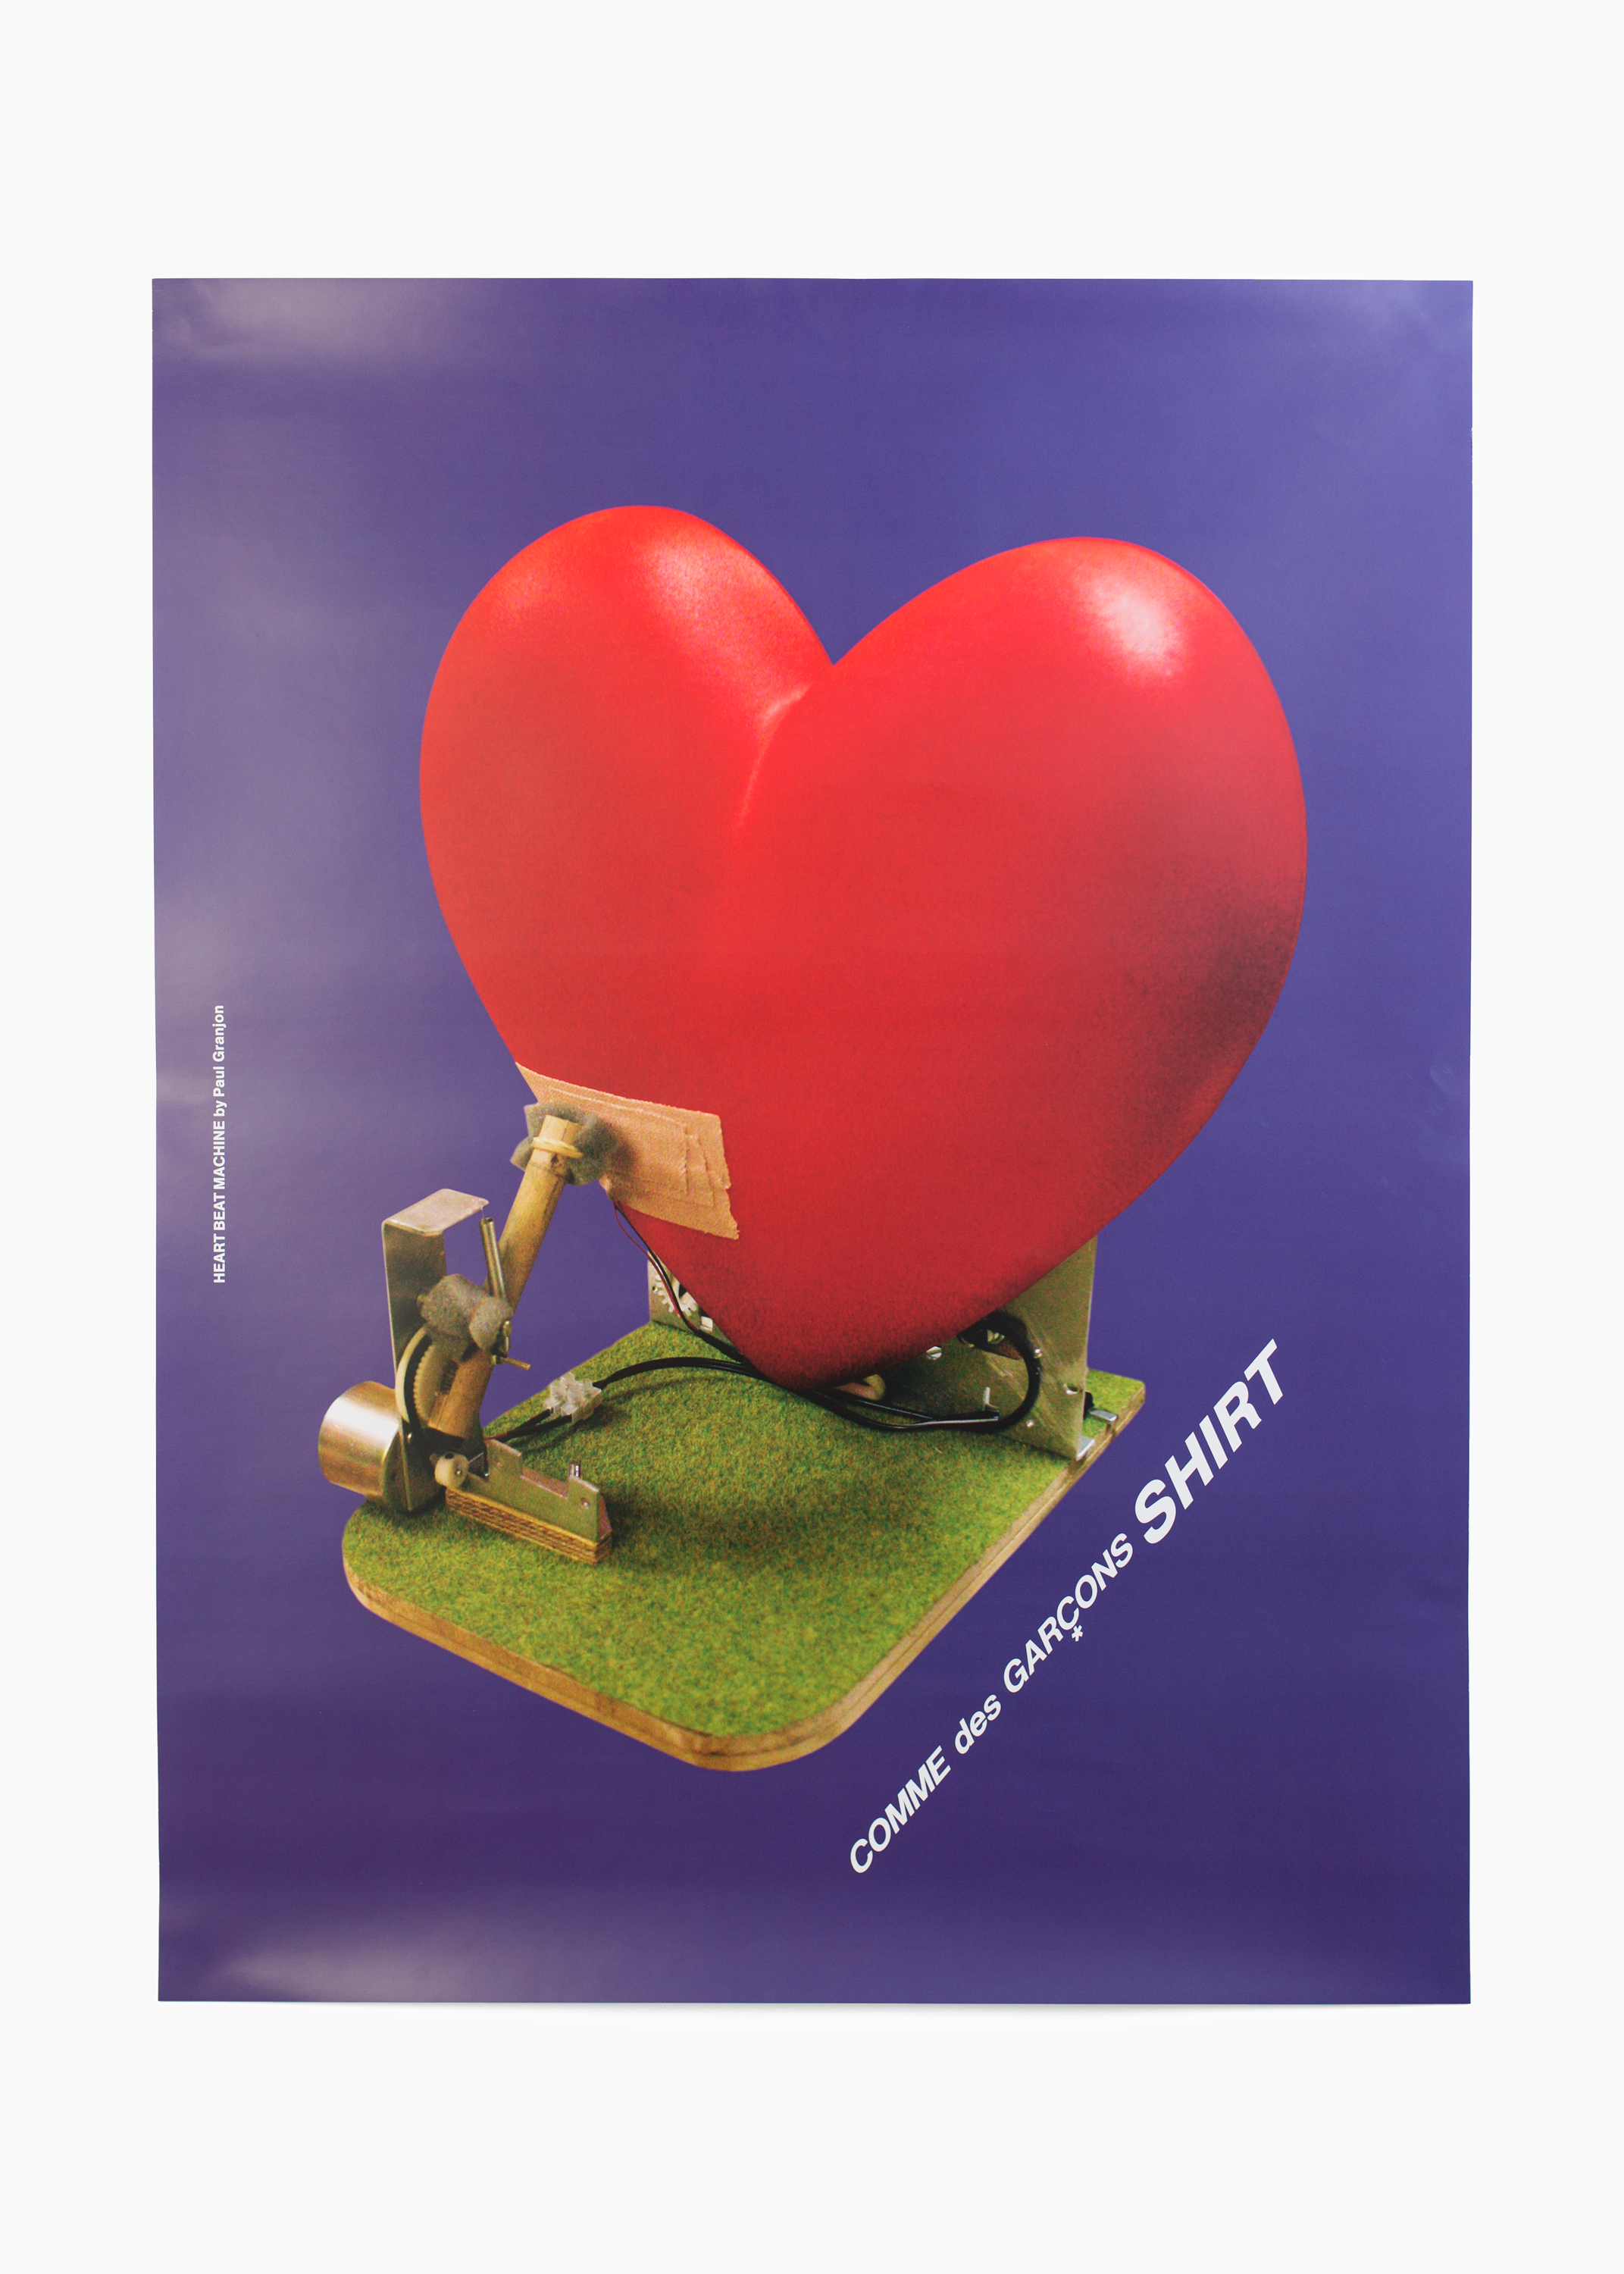 "Paul Granjon - Heart Beat Machine<br/>Poster 50 x 66 cm</br>Comme des Garçons 2008</br><a href=""mailto:info@ommu.org?subject=Price Request"">Price on request</a>"